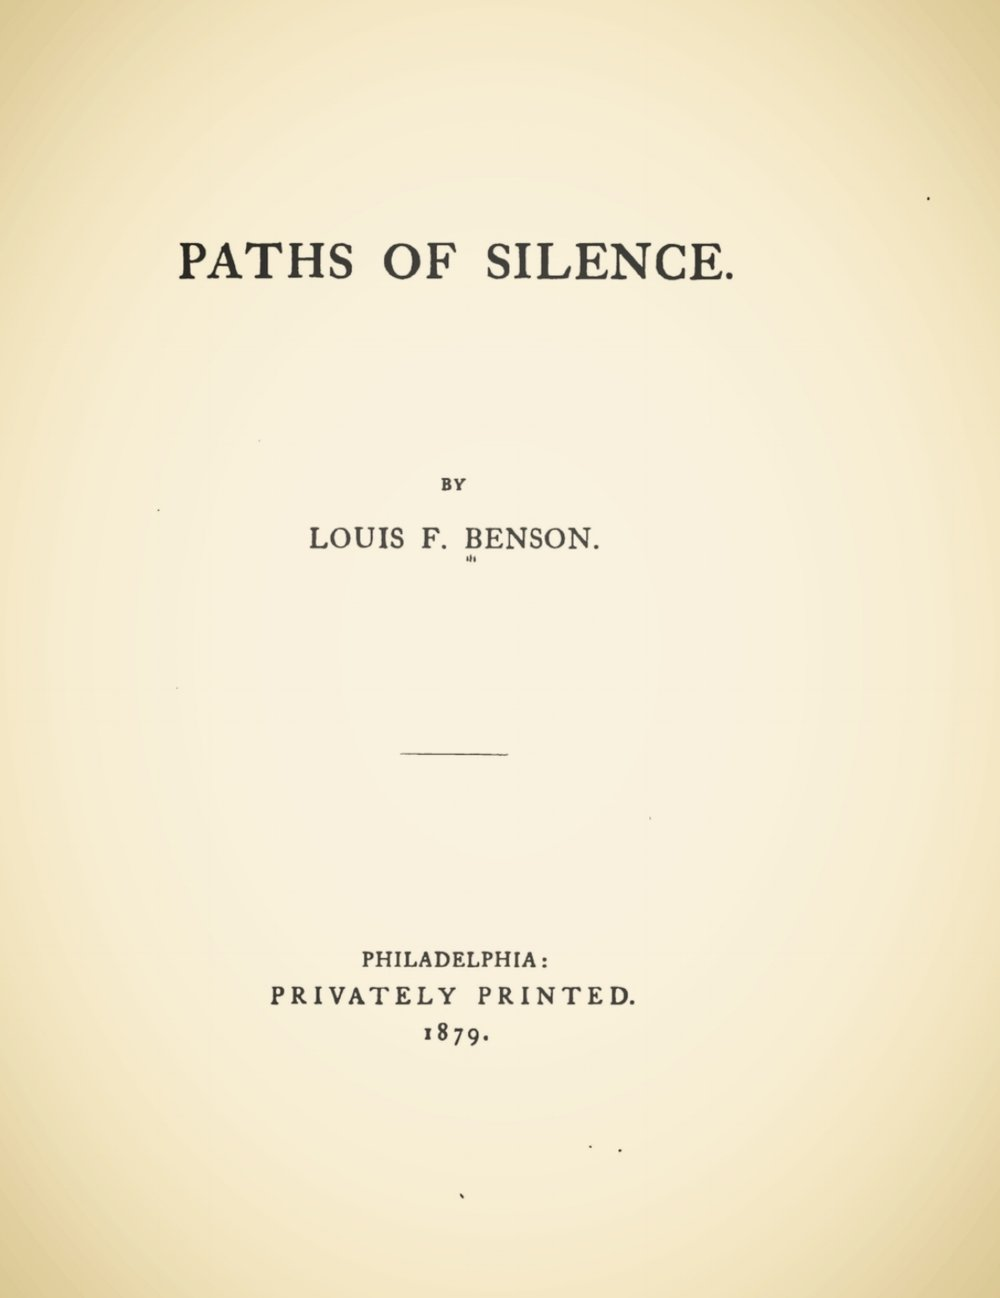 Benson, Louis FitzGerald, Paths of Silence Title Page.jpg